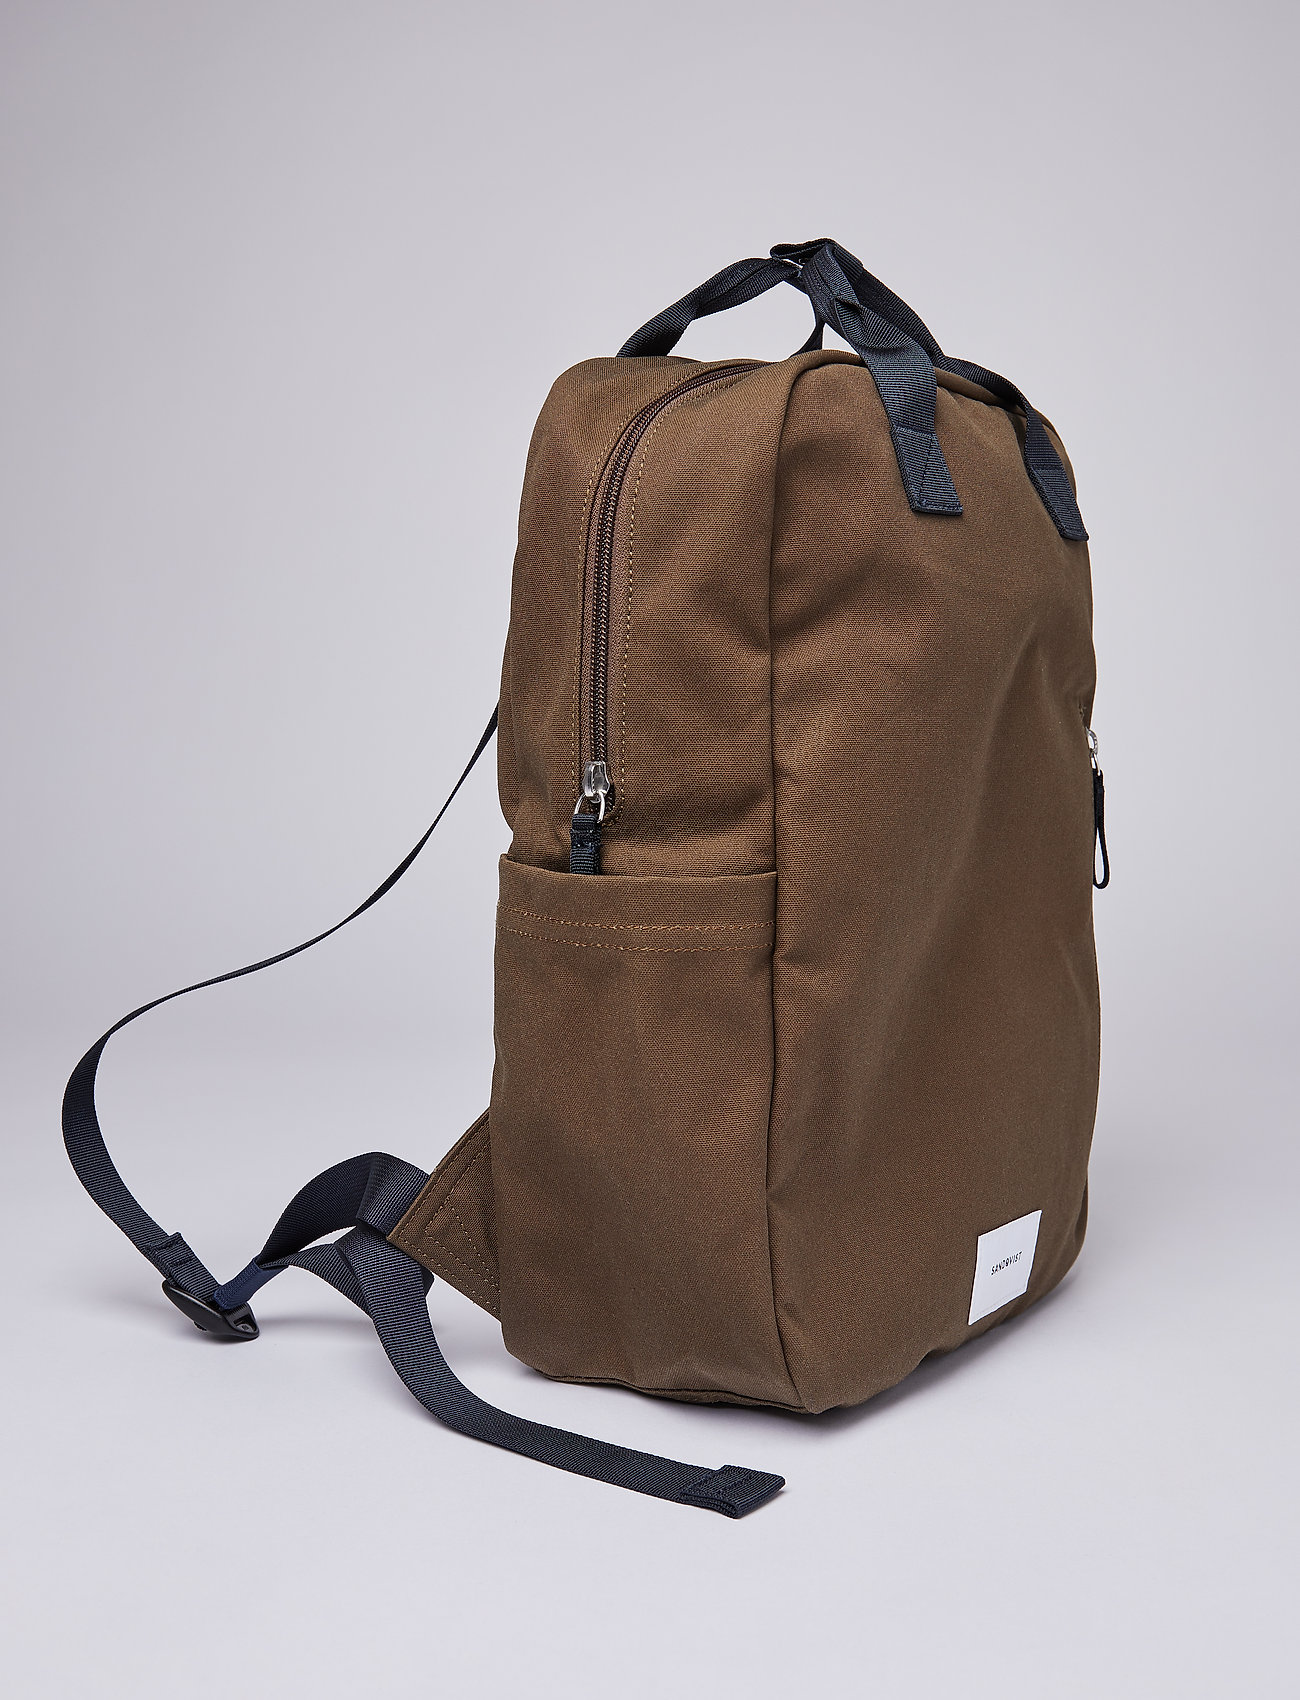 SANDQVIST - KNUT - sacs a dos - olive with navy webbing - 7